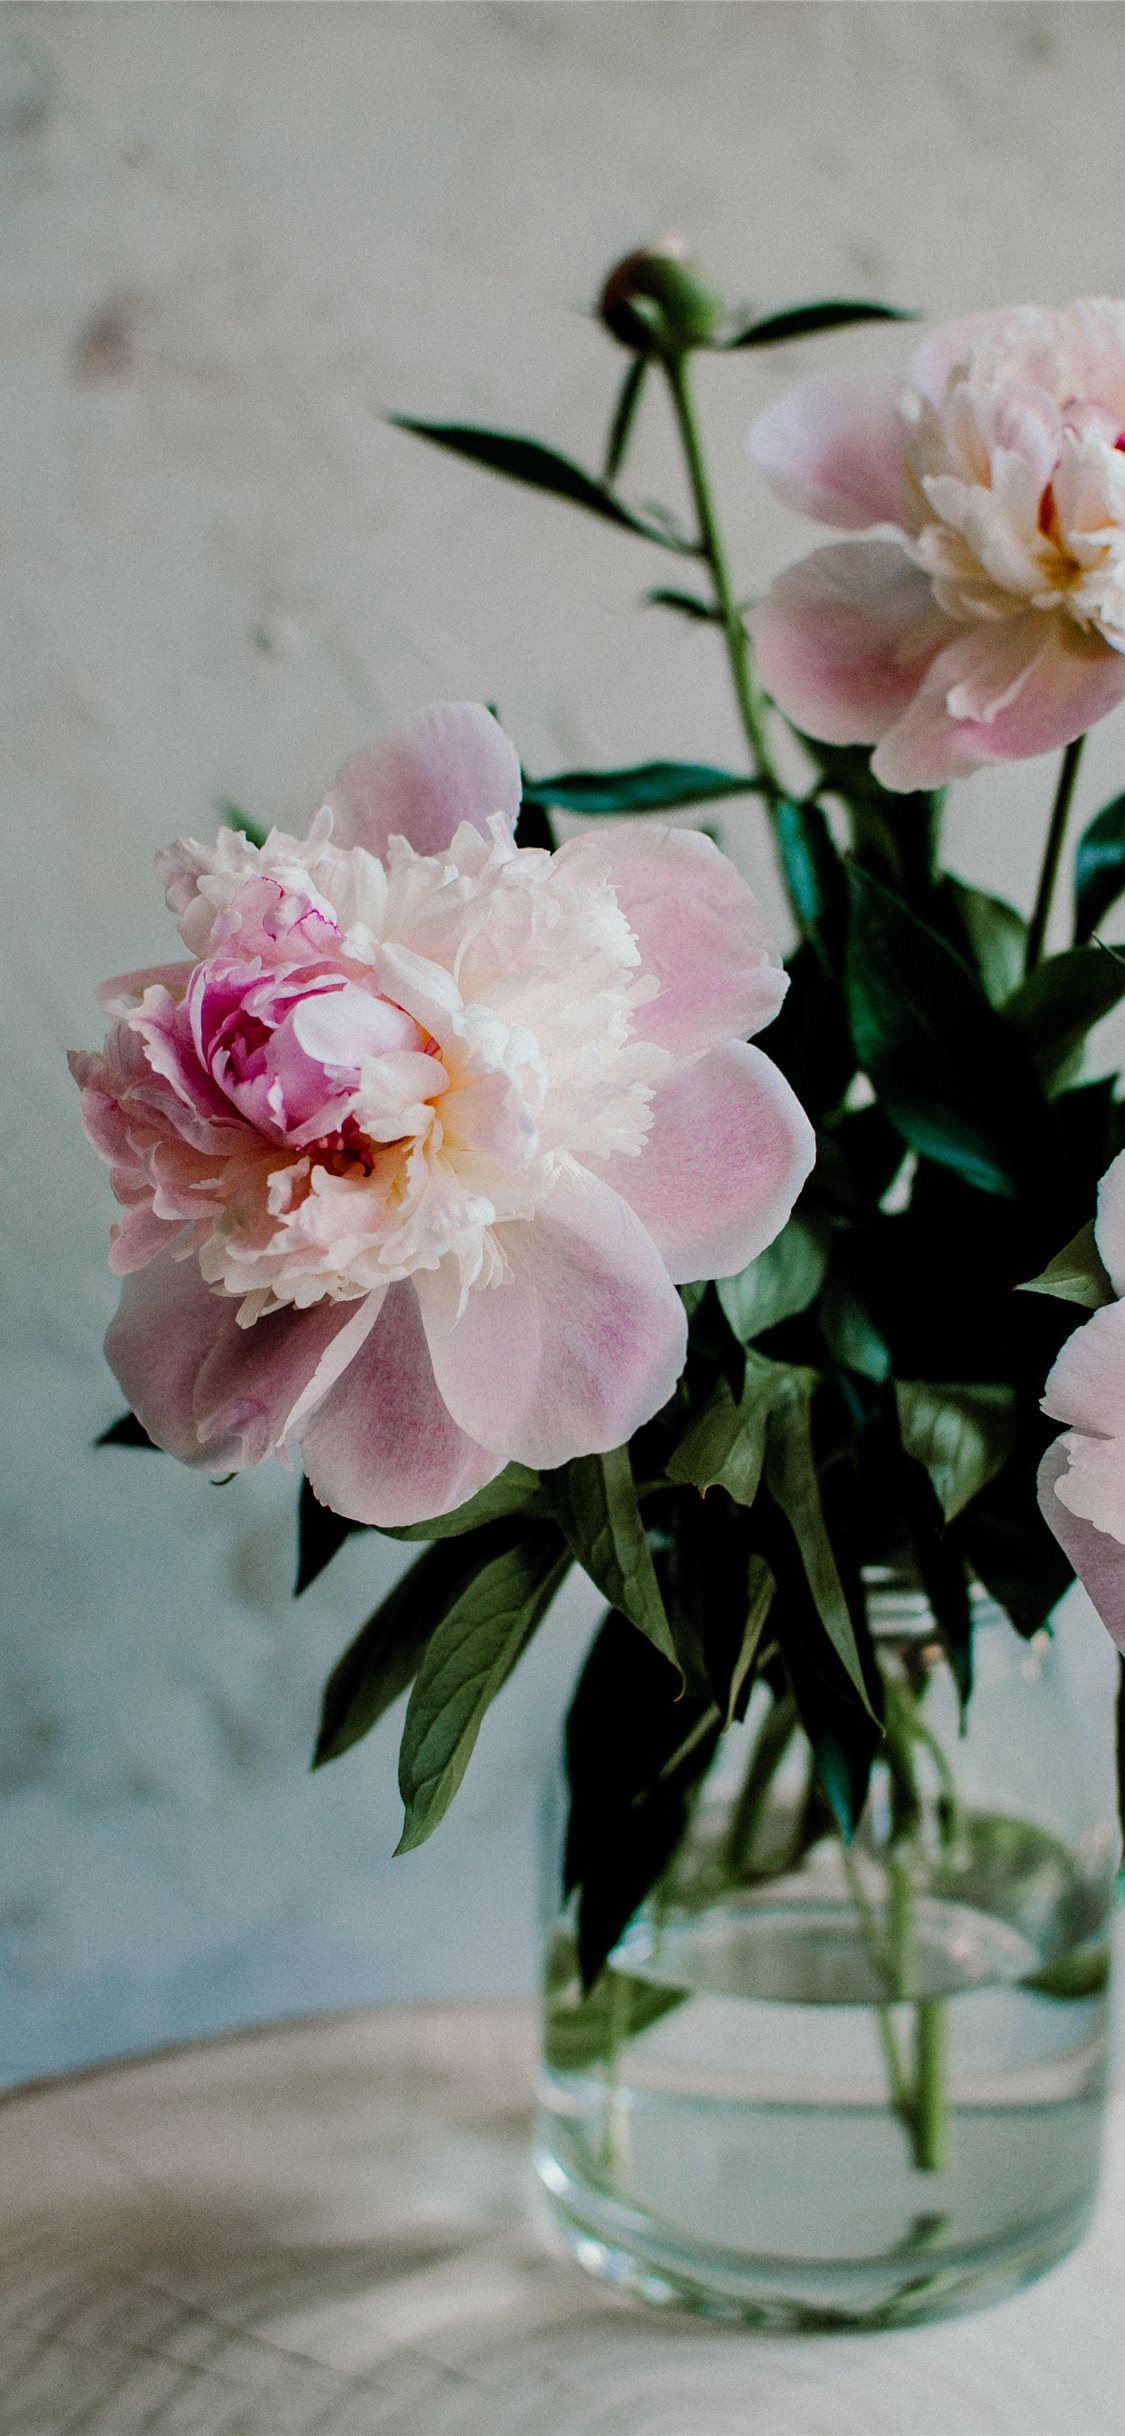 Blossom Pink Peonies Iphone X Wallpapers Free Download